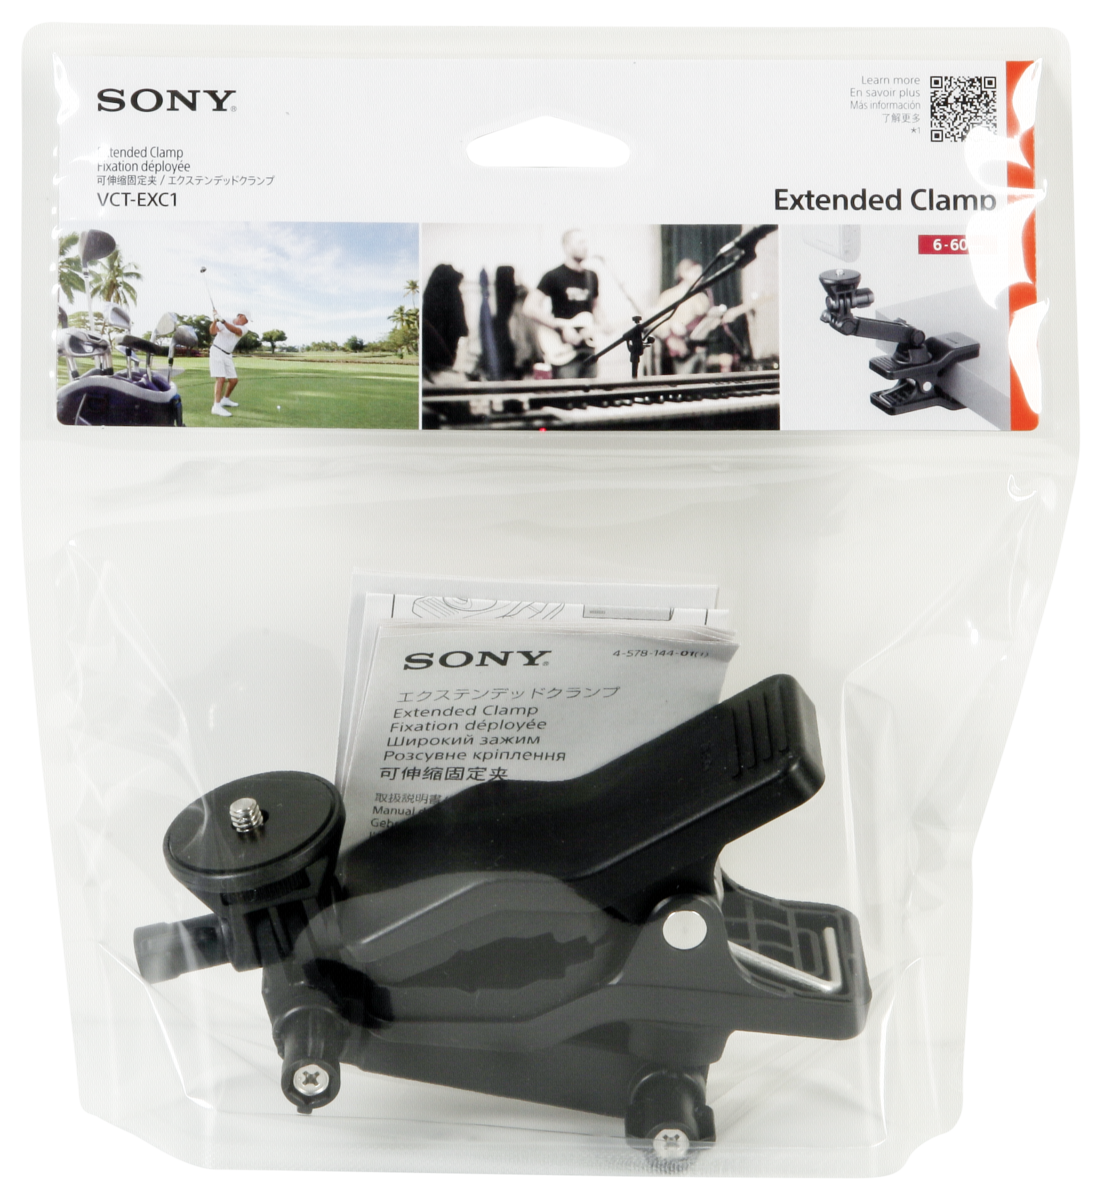 Sony VCT-EXC1 Extended Clamp